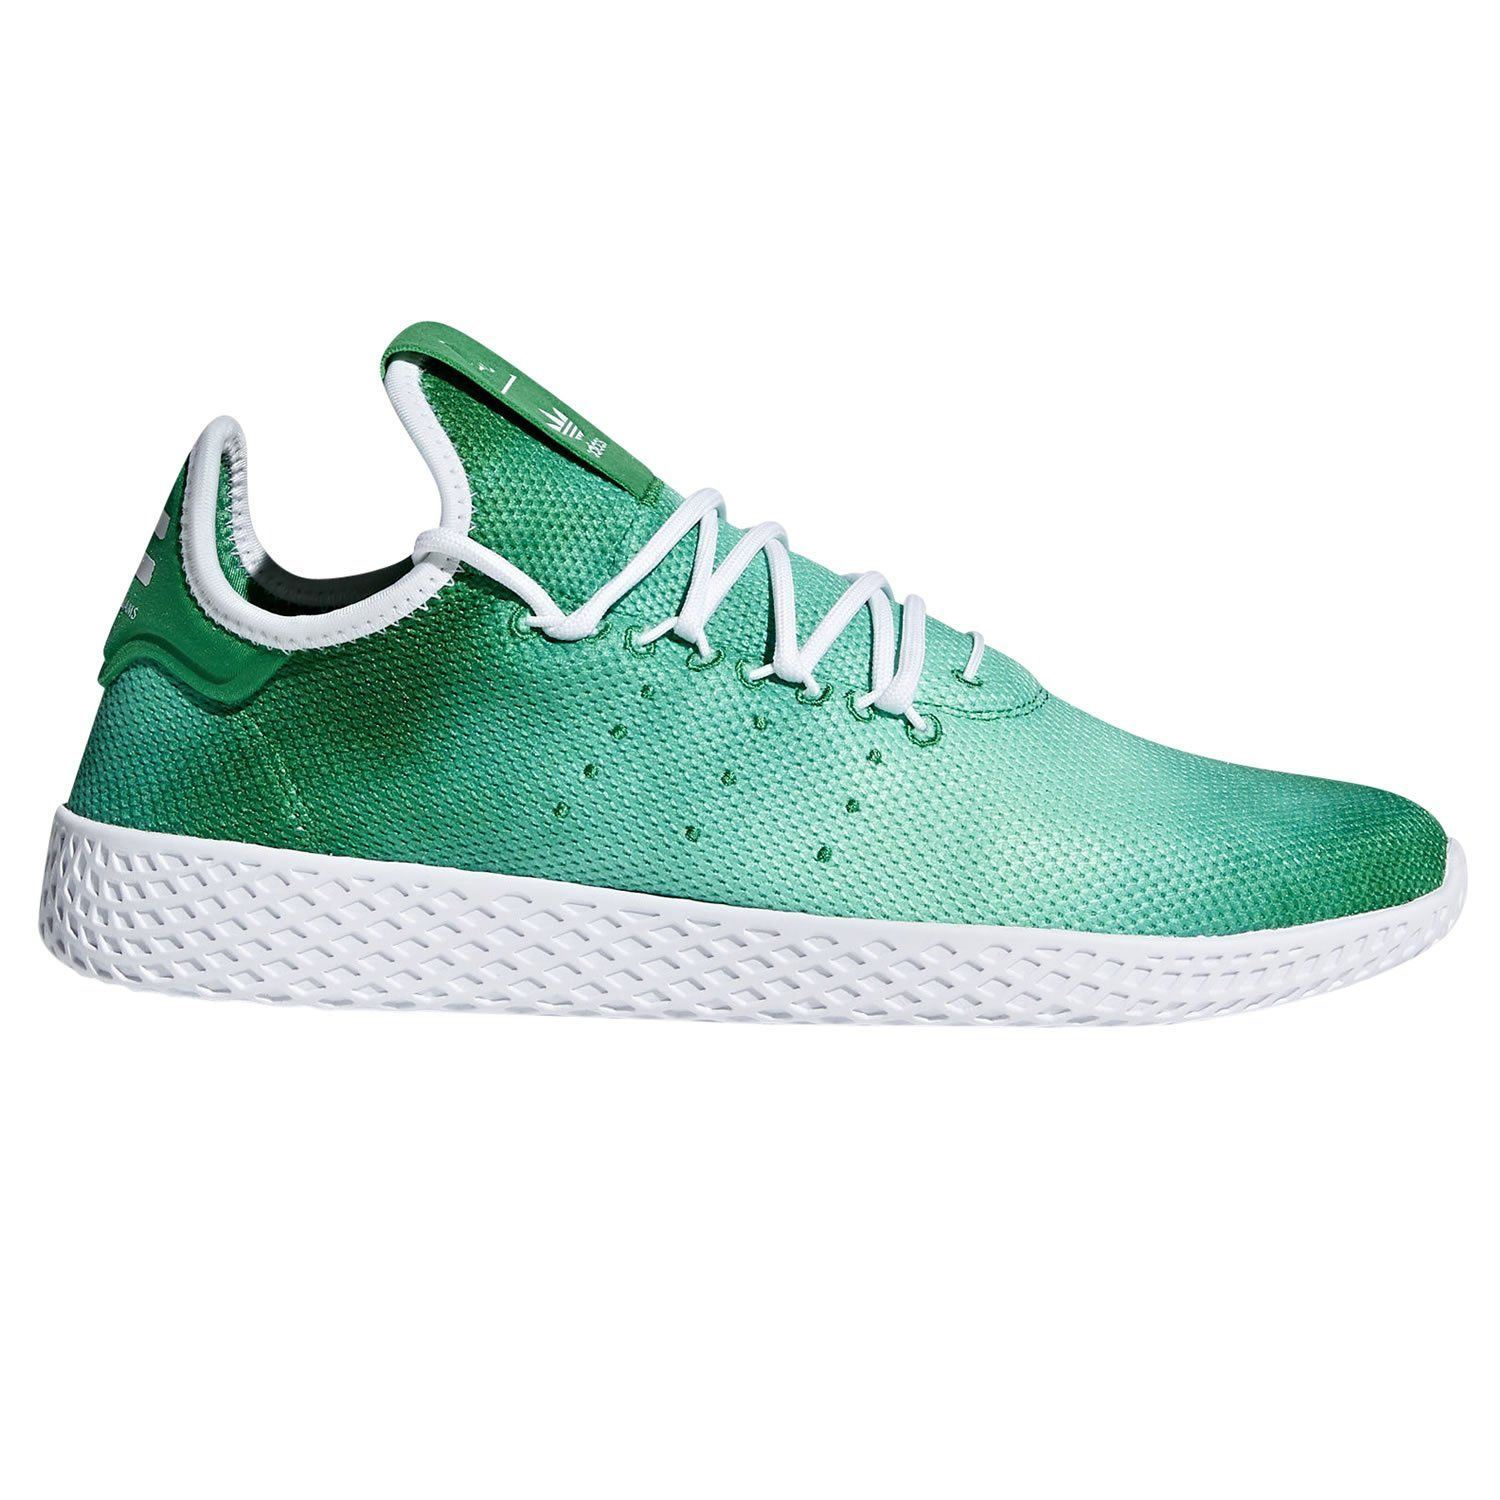 ADIDAS X PHARRELL WILLIAMS PW Tennis mesh Blanc Vert